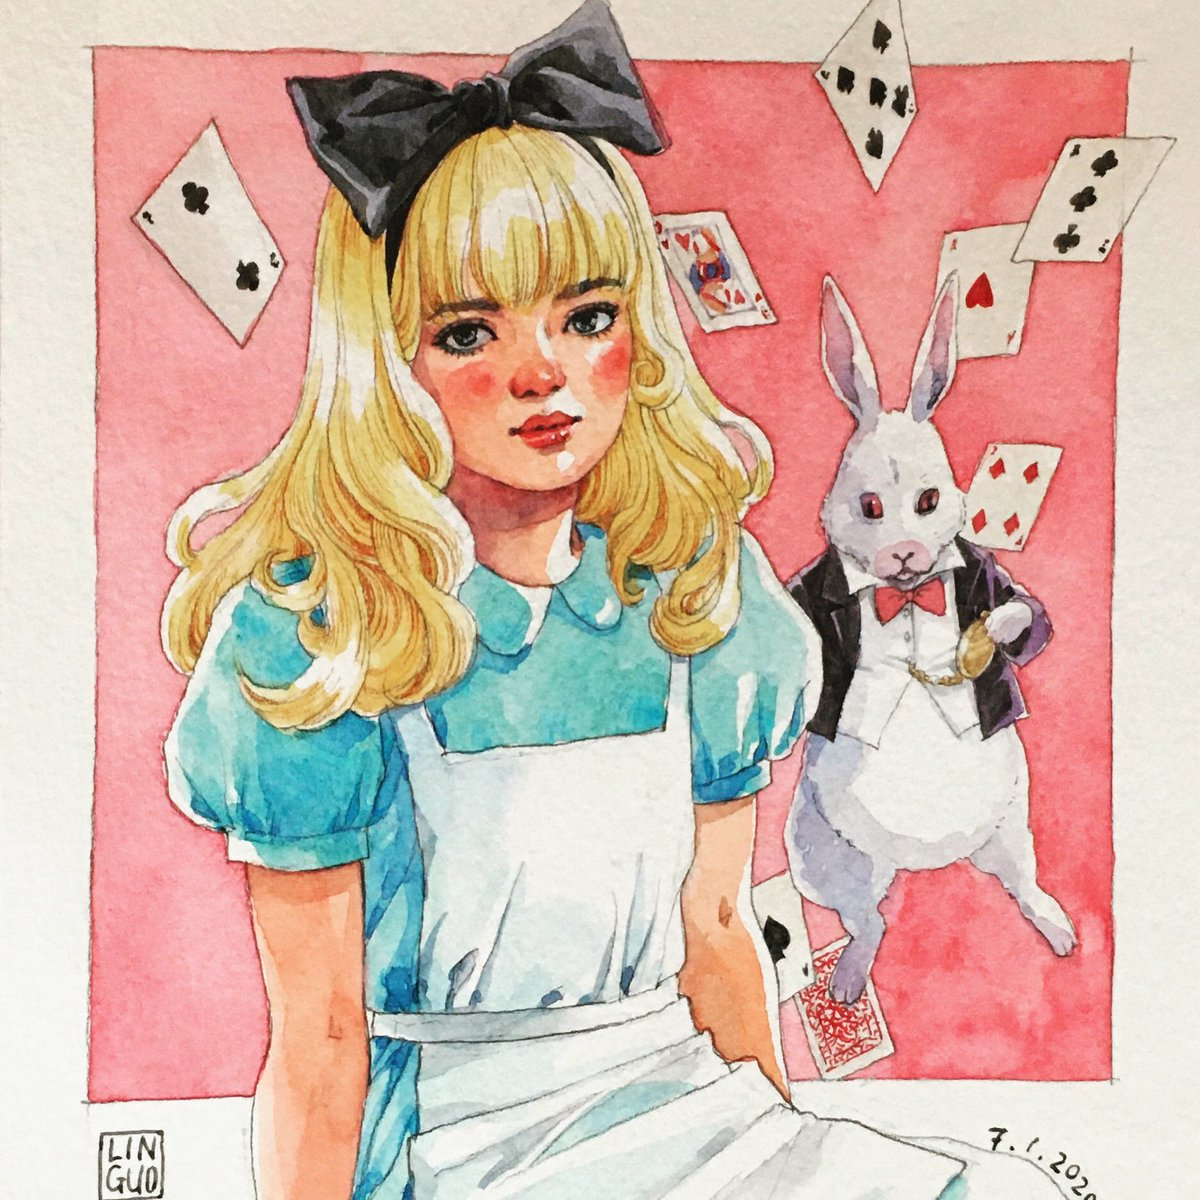 ♠️🐰👑   #art #artist #artistsontwitter #illustration #watercolor #girl #potrait #drawing #sketch #dailysketch  #sketchbook #doodle #dailydrawing #fanart #aliceinwonderland #alice #抖抖村 #抖抖村打卡 #doudoutown https://t.co/ieiDzY6TDq